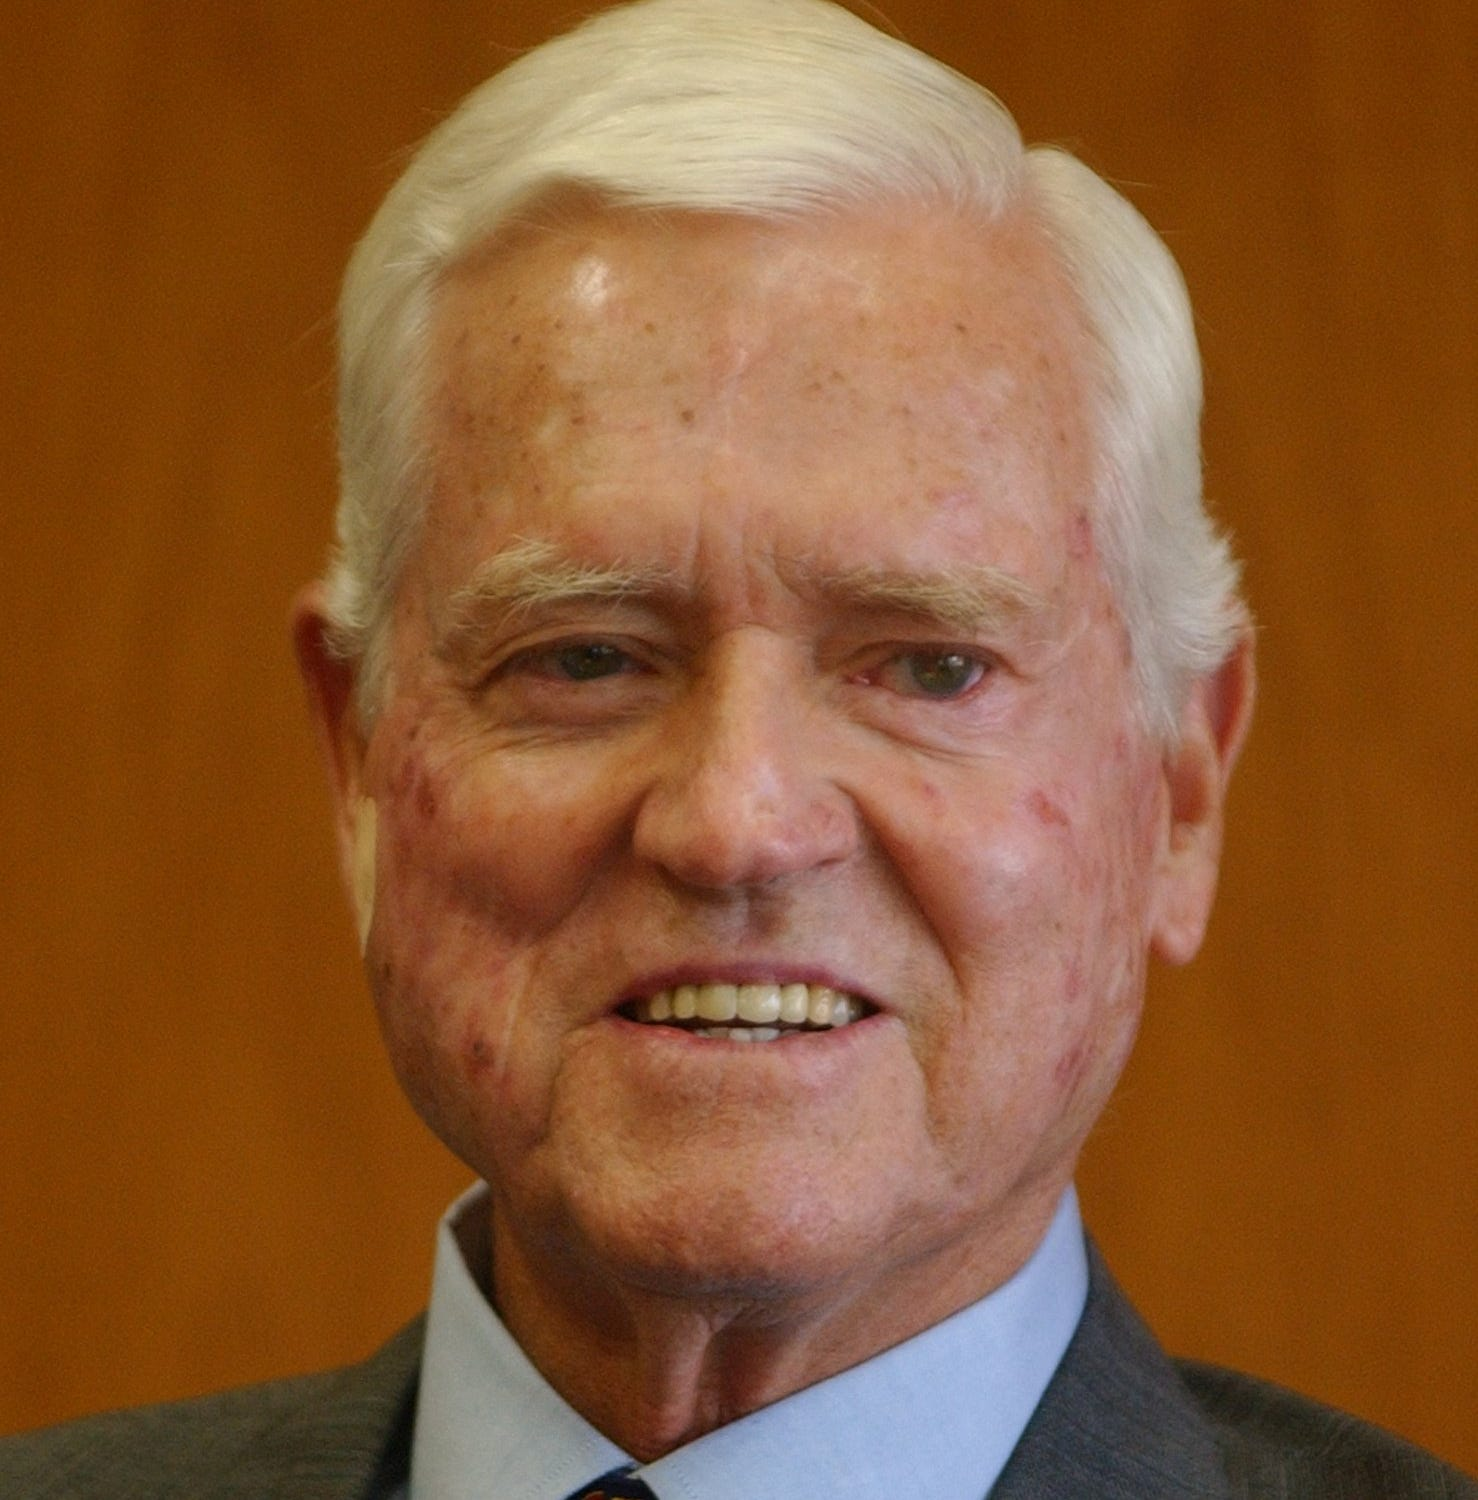 Fritz Hollings carried a quick wit and love for SC, which he 'dragged into 20th century'